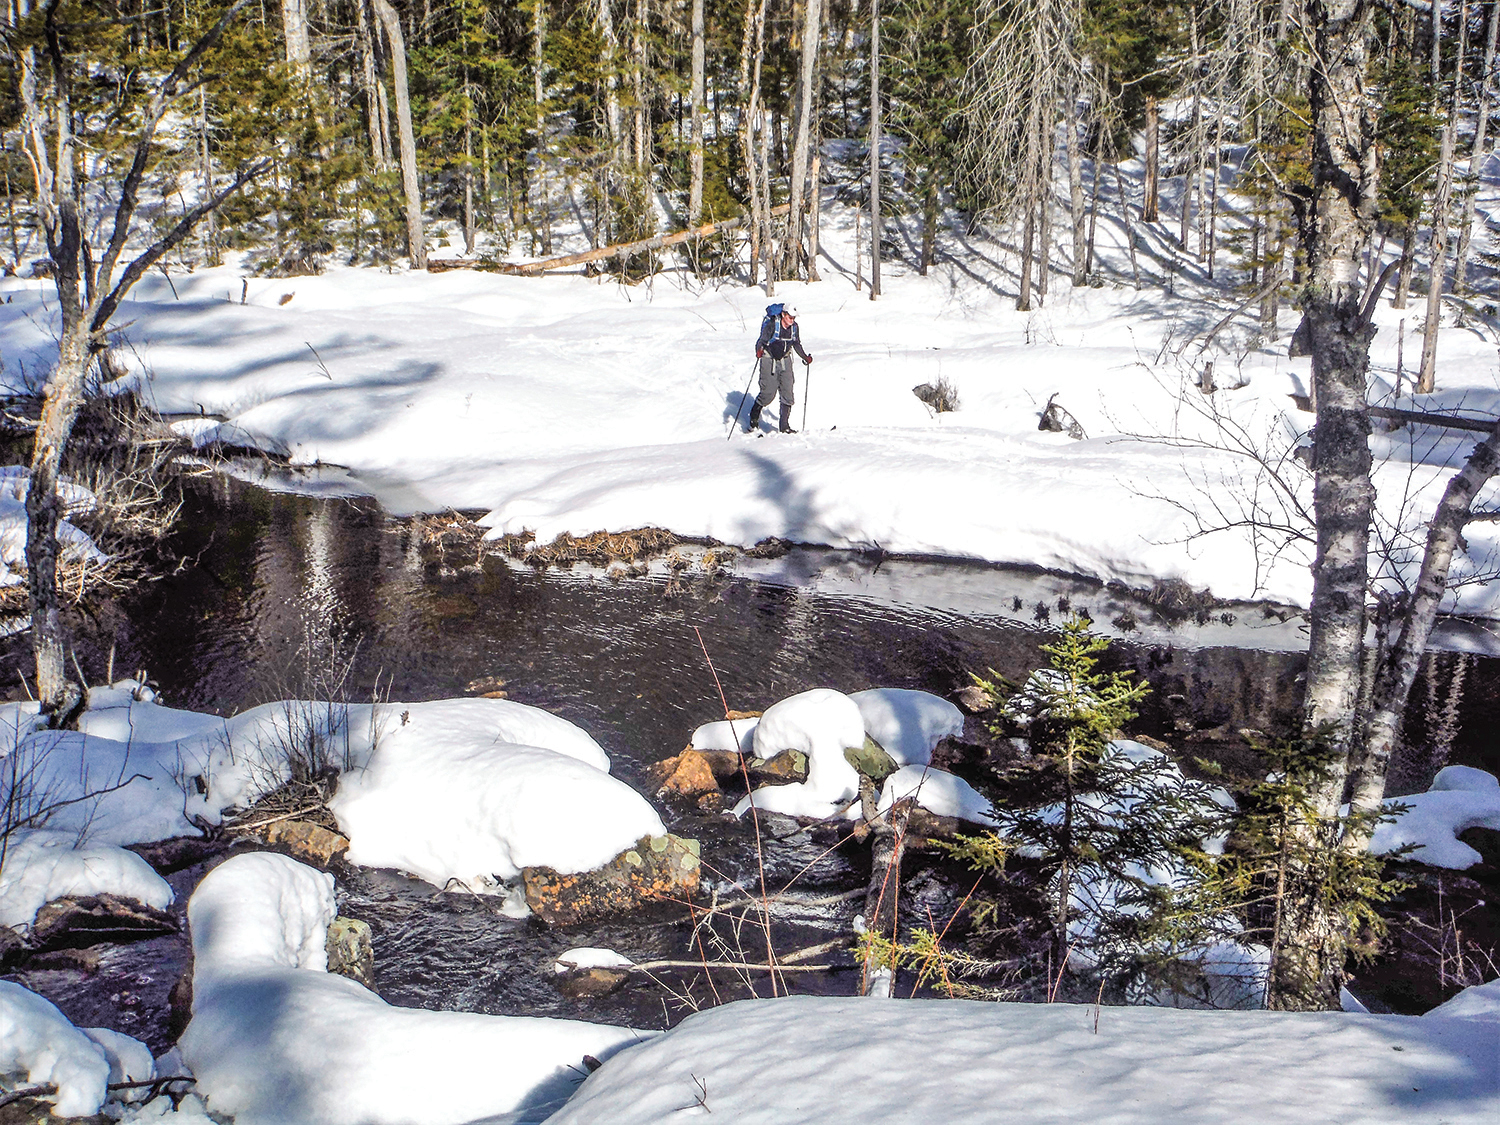 Skiing along the outlet of Cascade Pond.  Rich Macha